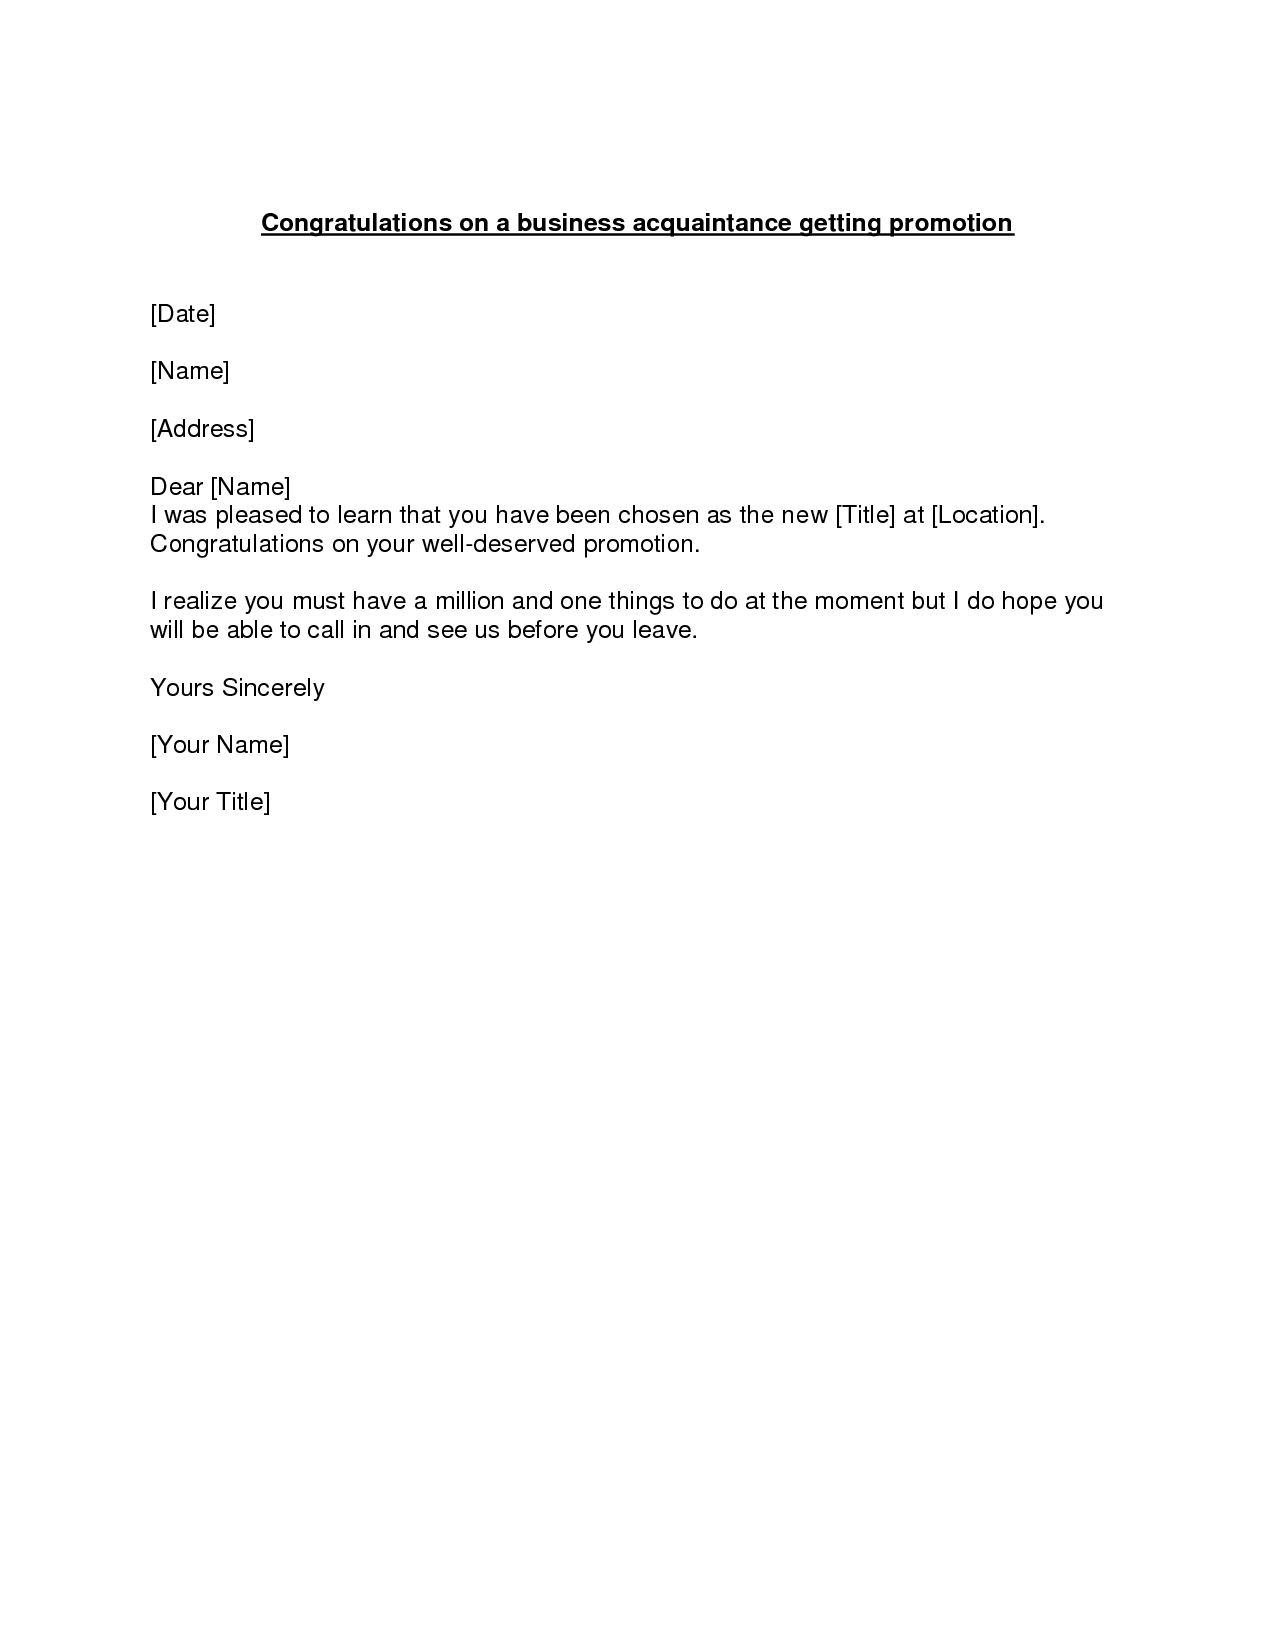 Promotion Congratulations Letter